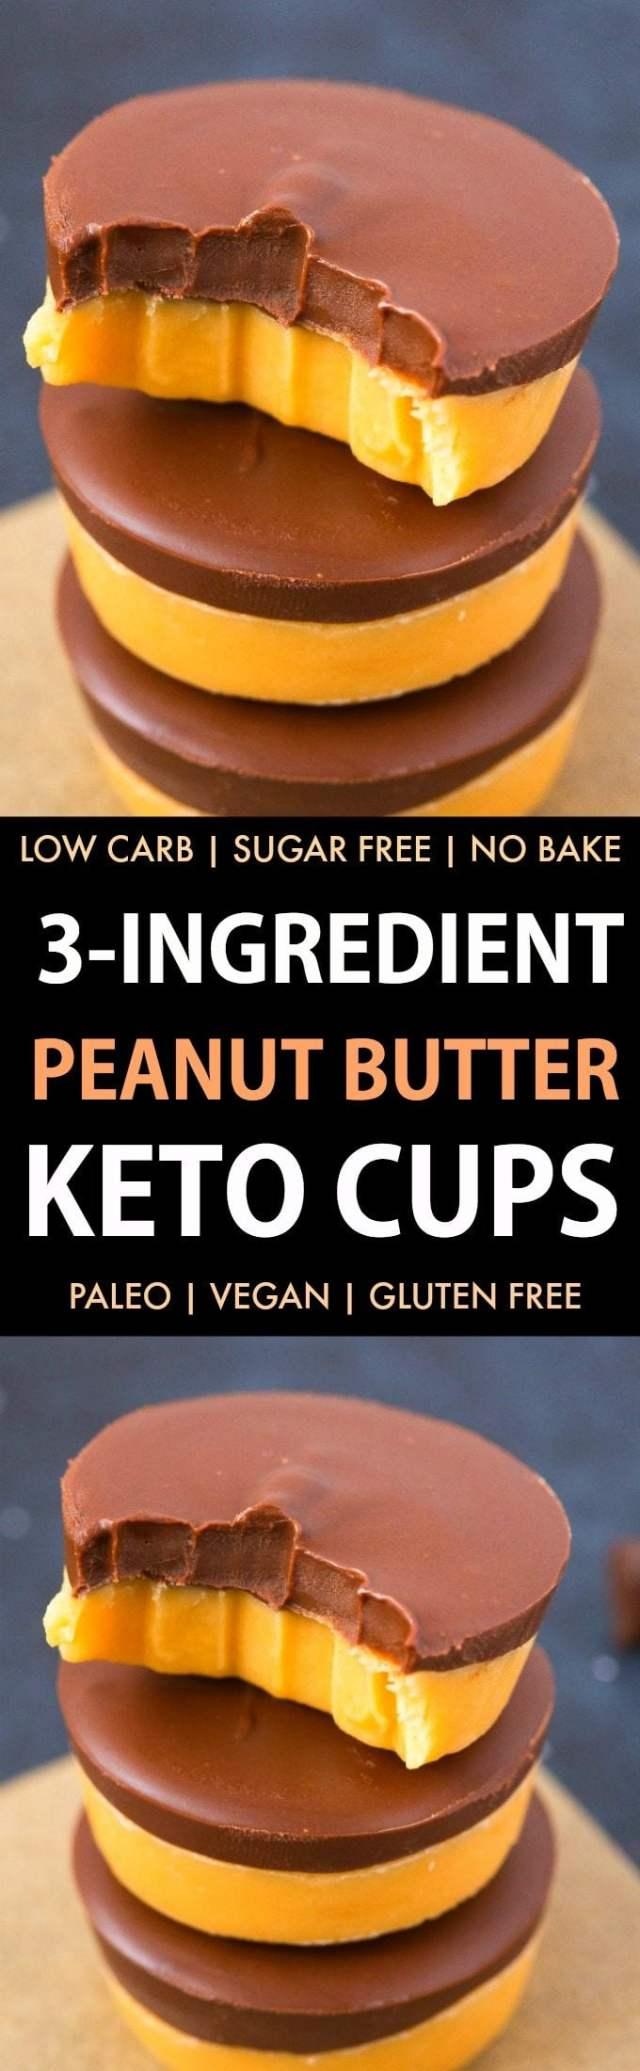 3-Ingredient Keto Peanut Butter Fudge (Paleo, Low Carb, Vegan, Sugar Free, Gluten Free)- Easy, smooth and creamy peanut butter fudge recipe using just 3 ingredients and needing 5 minutes! The Perfect snack or dessert to satisfy the sweet tooth! #keto #ketodessert #peanutbutter #healthy #fudge | Recipe on thebigmansworld.com